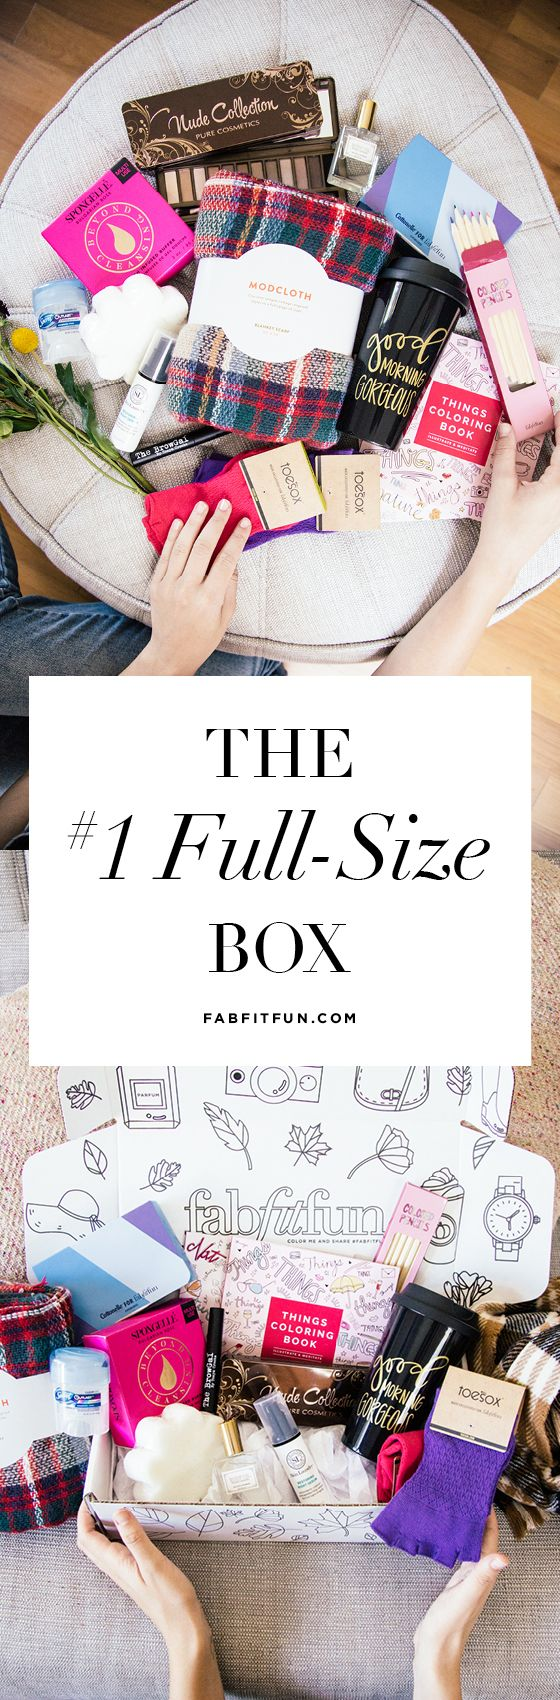 Fall into FabFitFun! Treat yourself to over $200 worth of huge full-size beauty, fashion, + fitness products for just $39.99 with code AUTUMN.